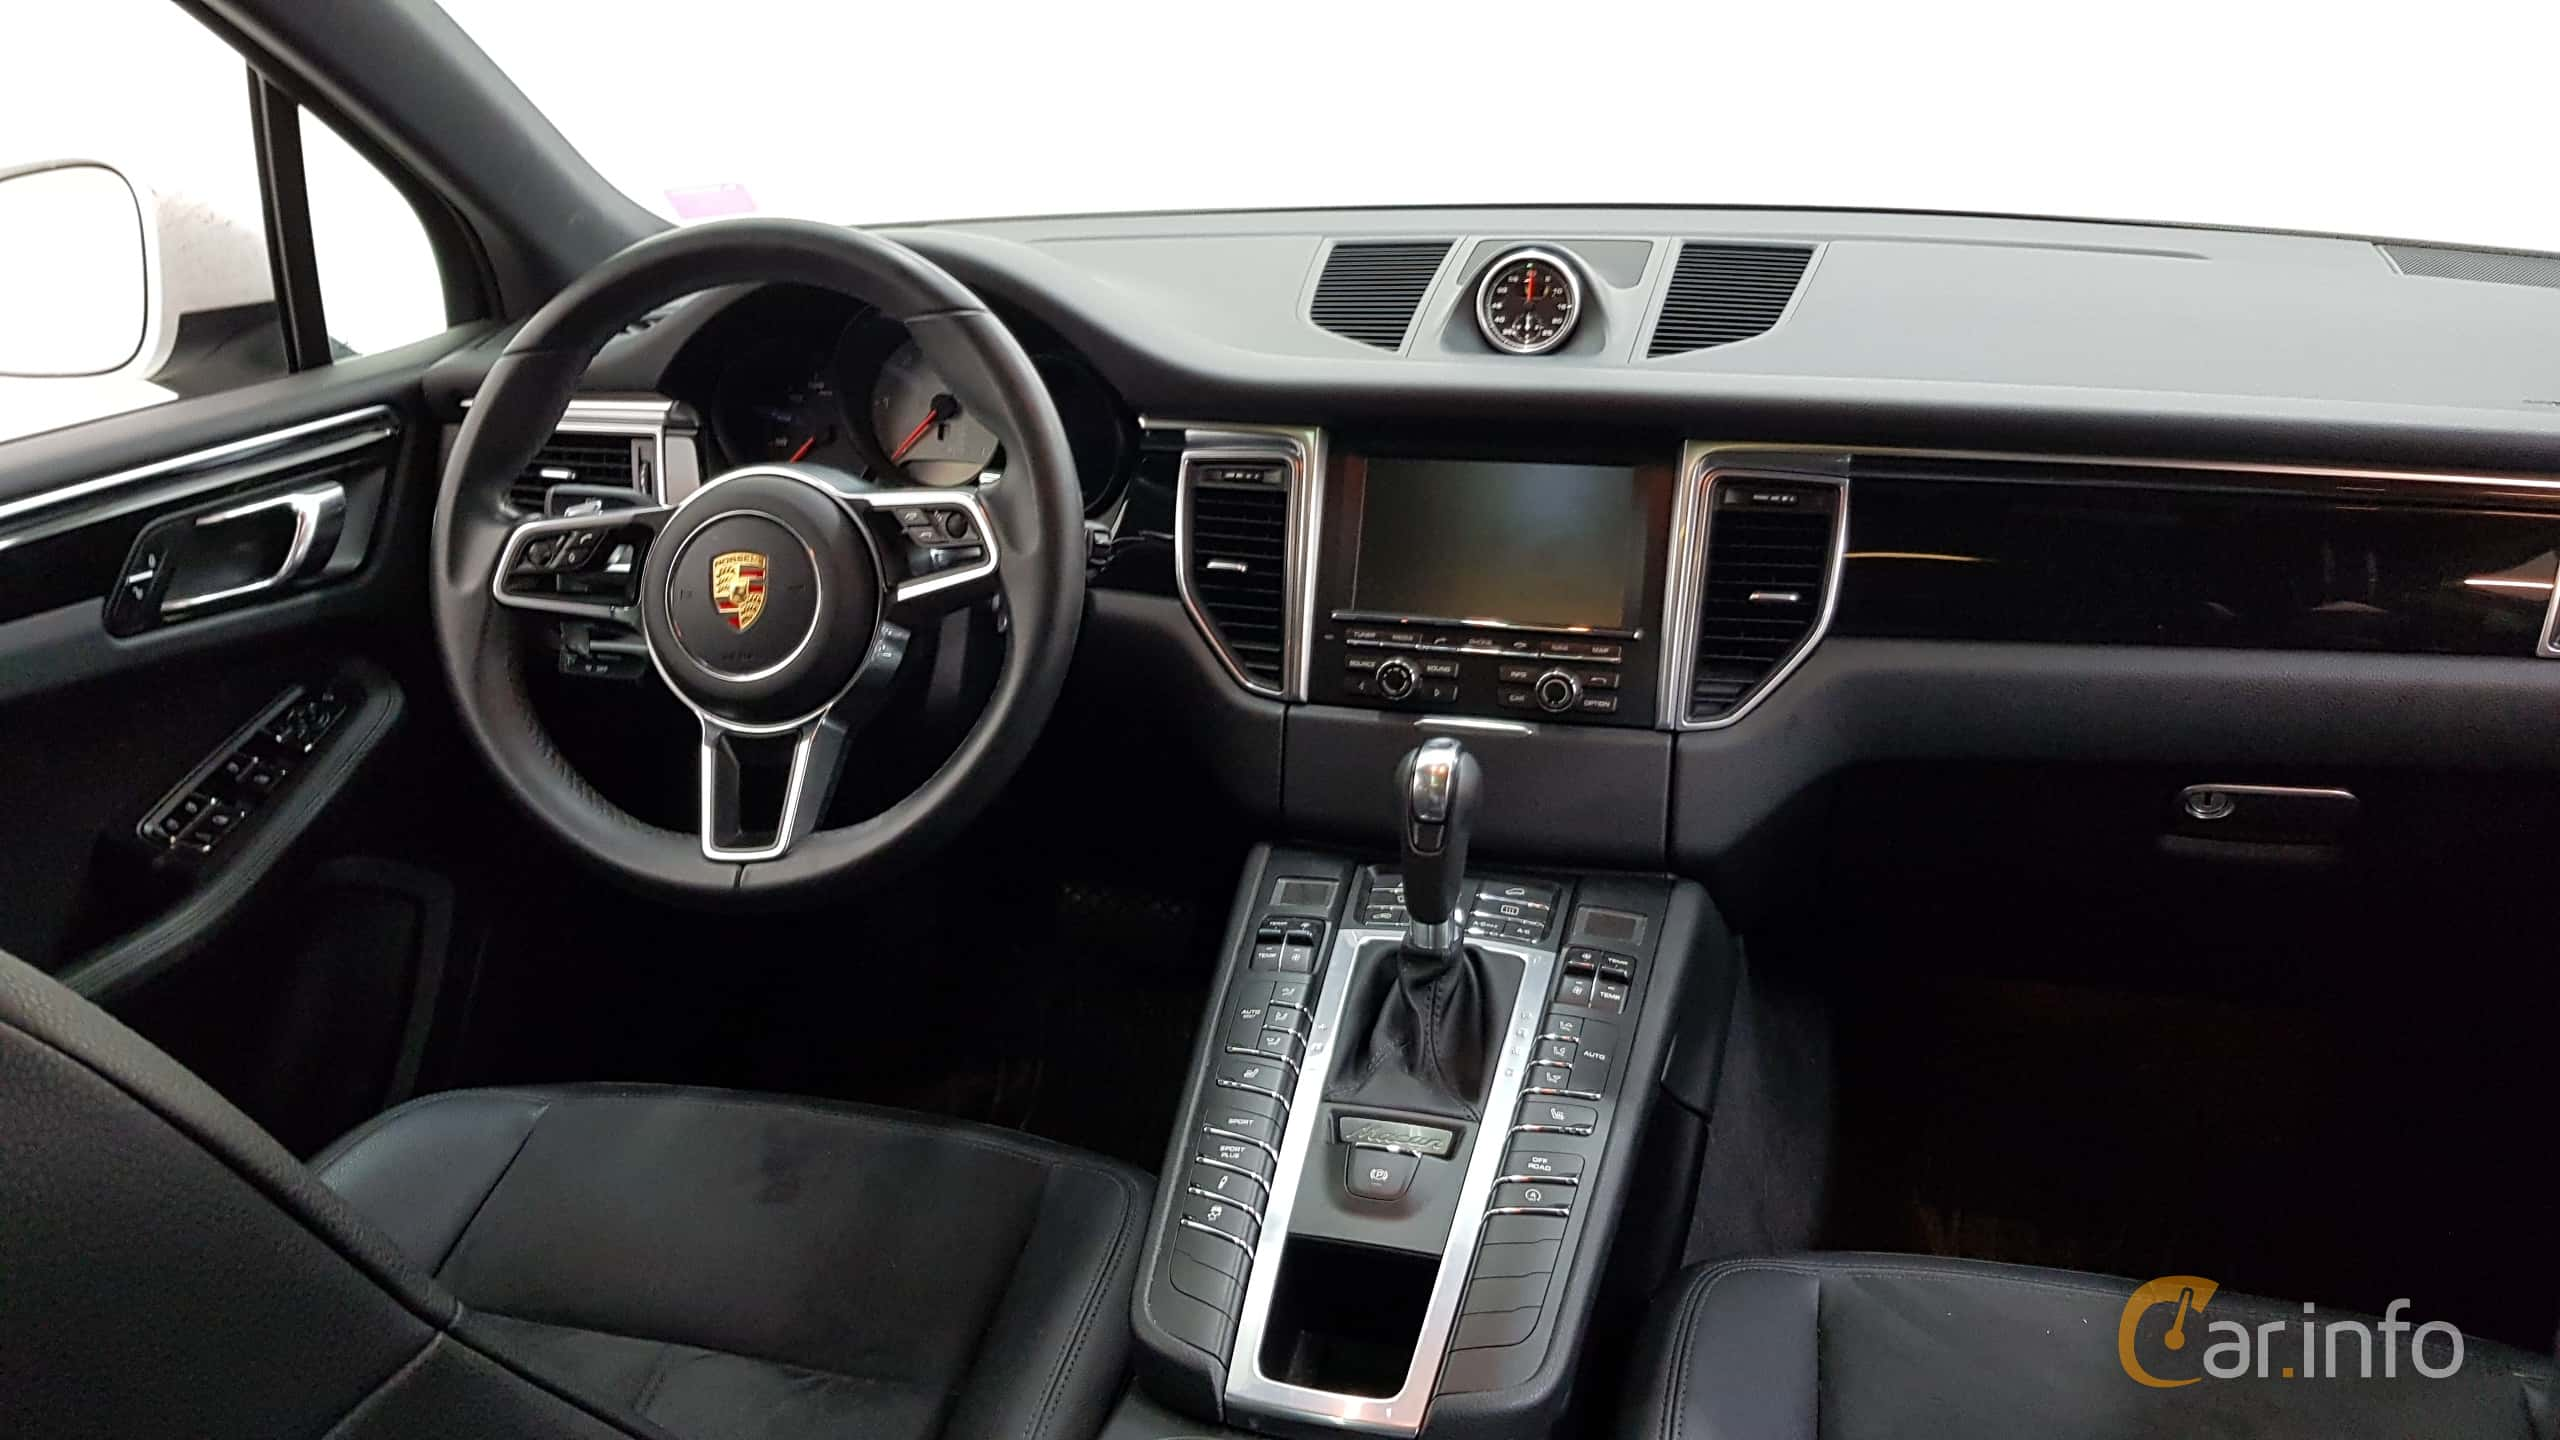 White Porsche S.car.info/image_files/full/porsche Macan Interior. ...